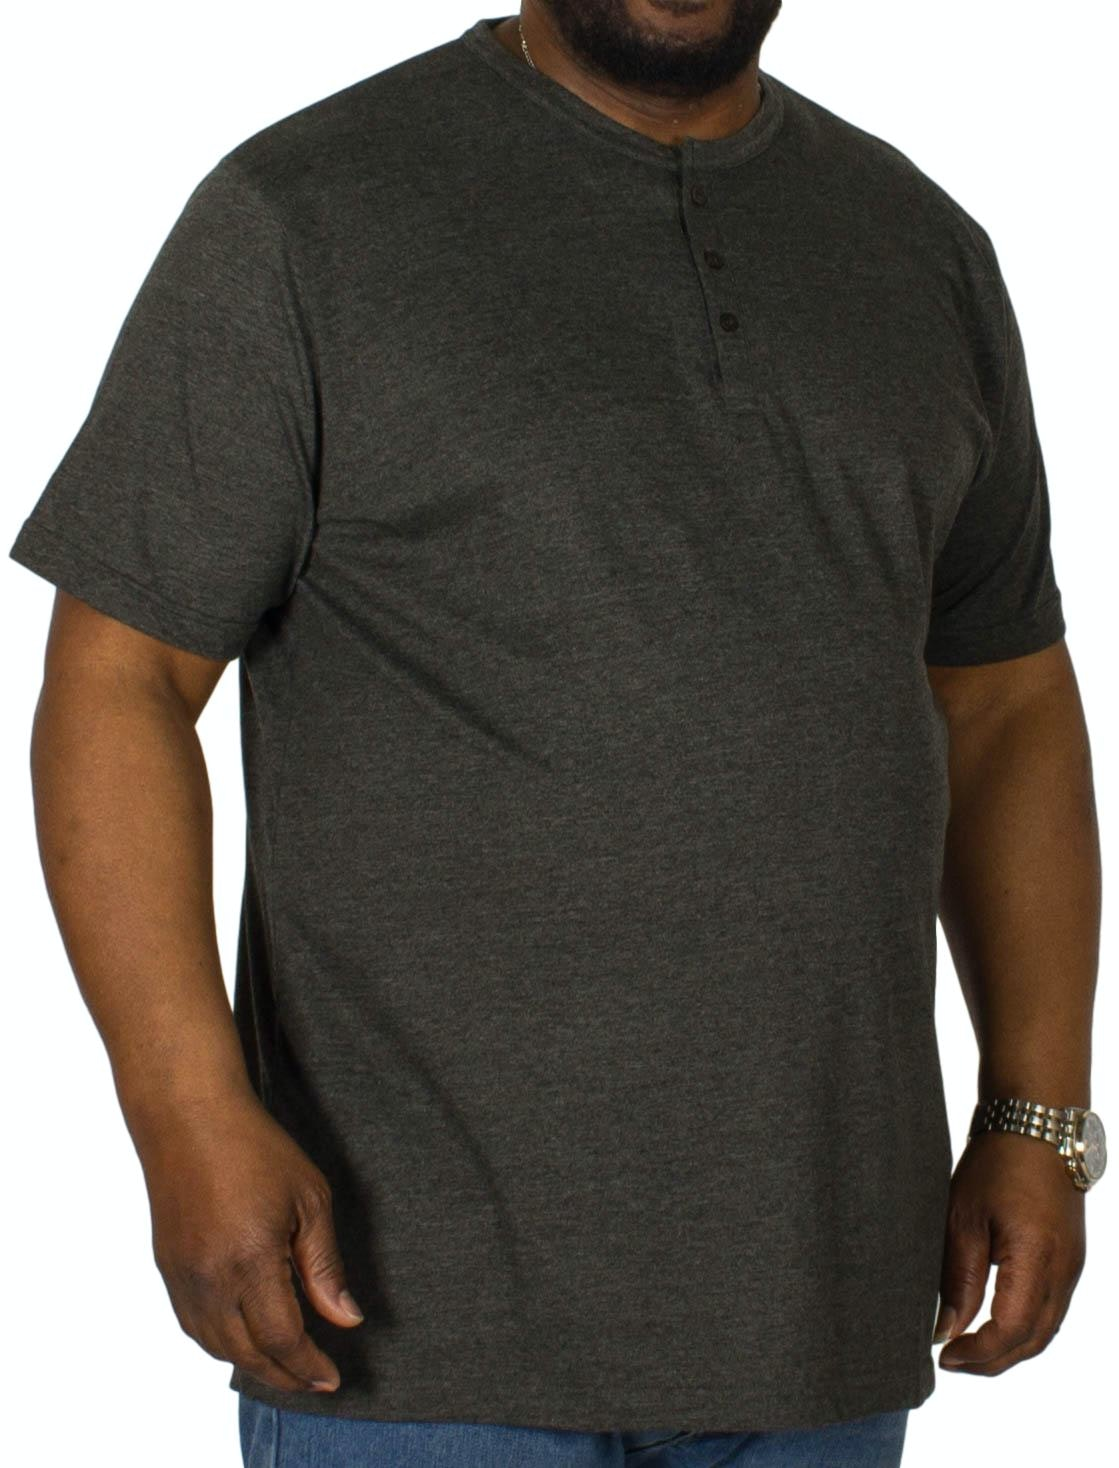 Bigdude Grandad T-Shirt Charcoal Tall